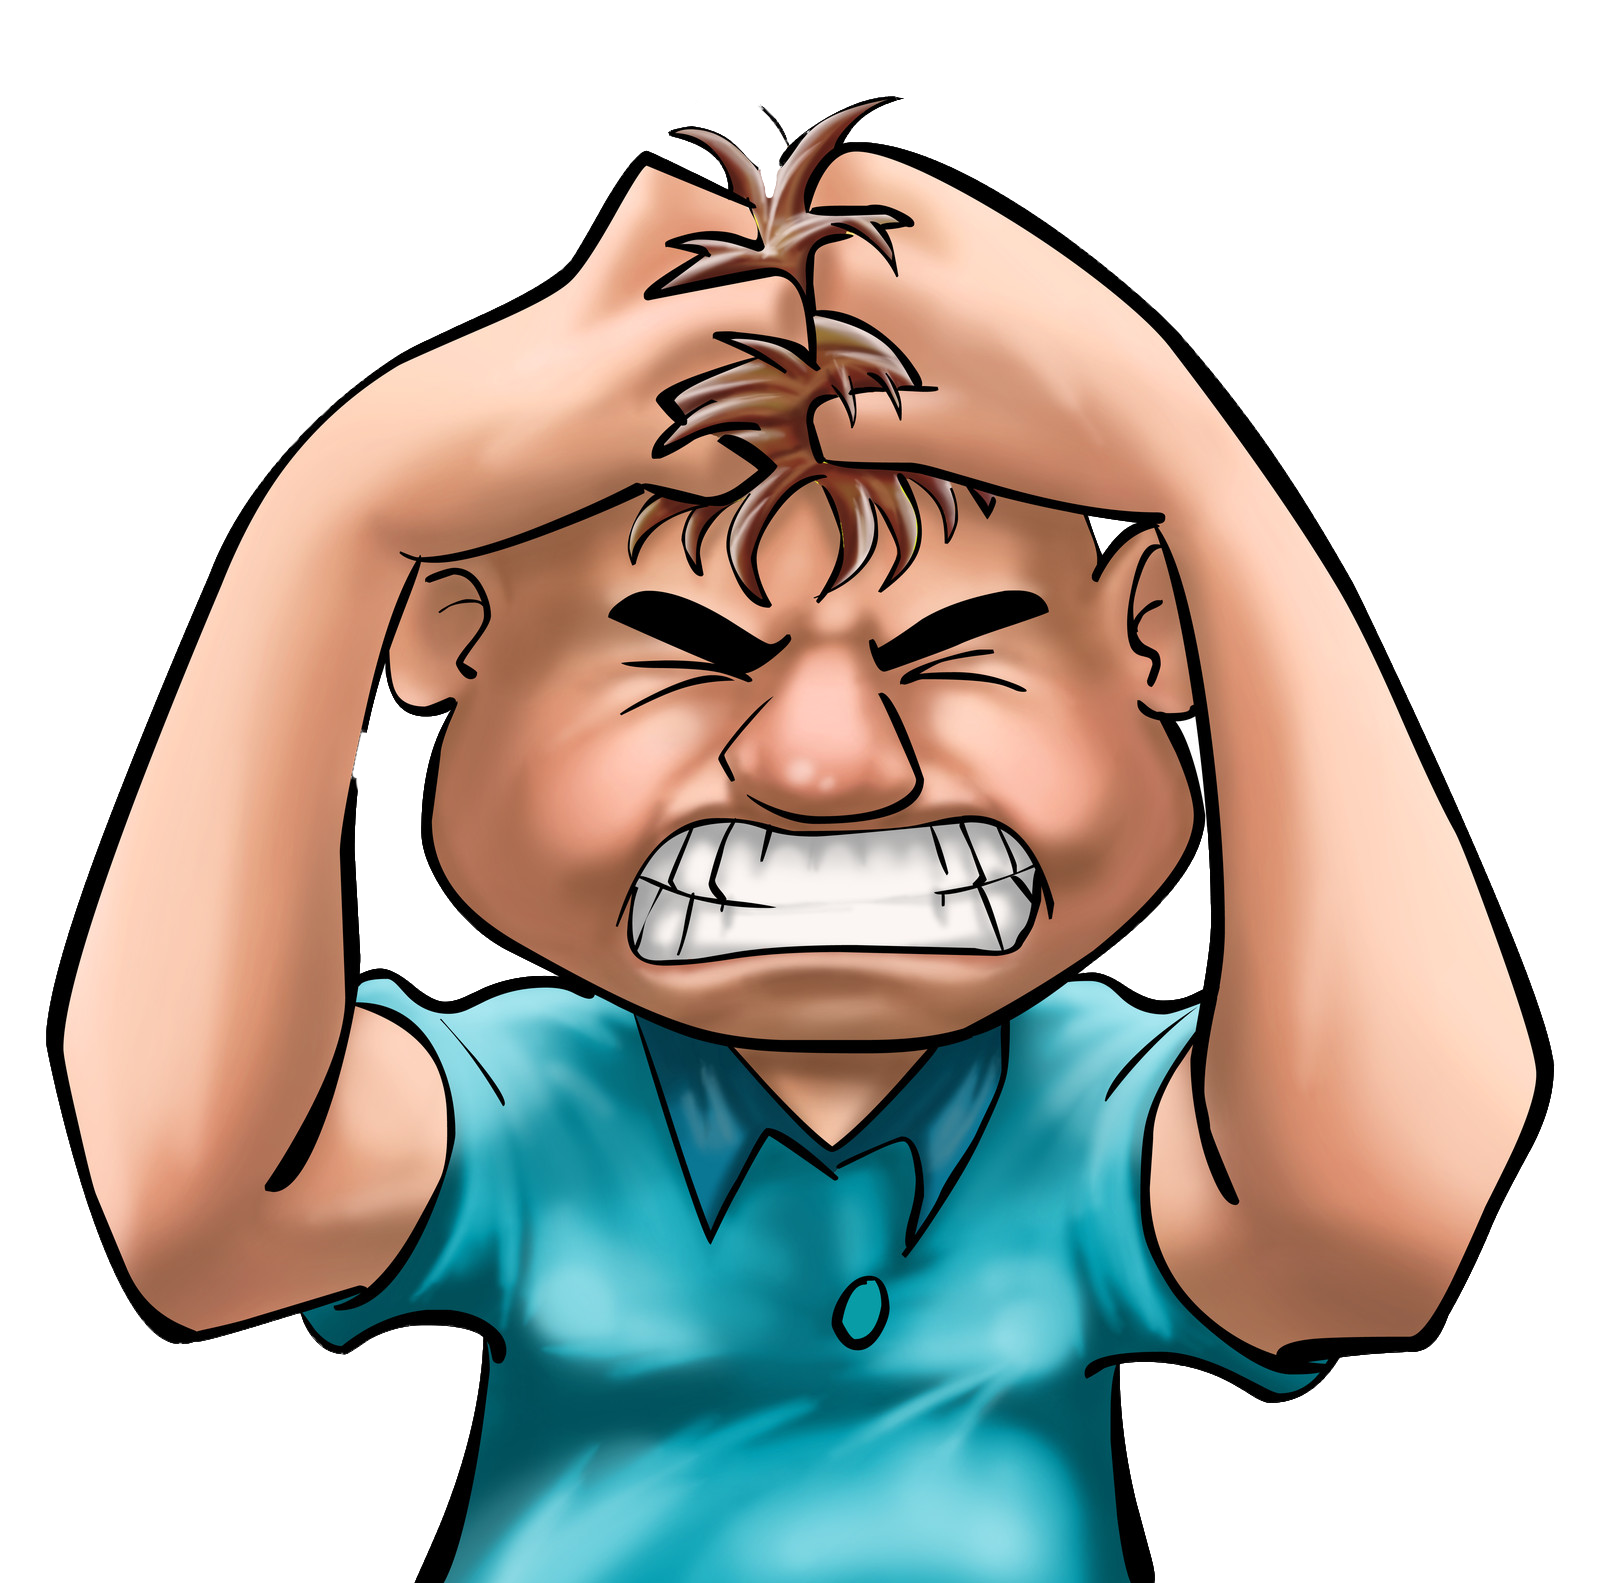 Download Angry Cartoon Png () png images.